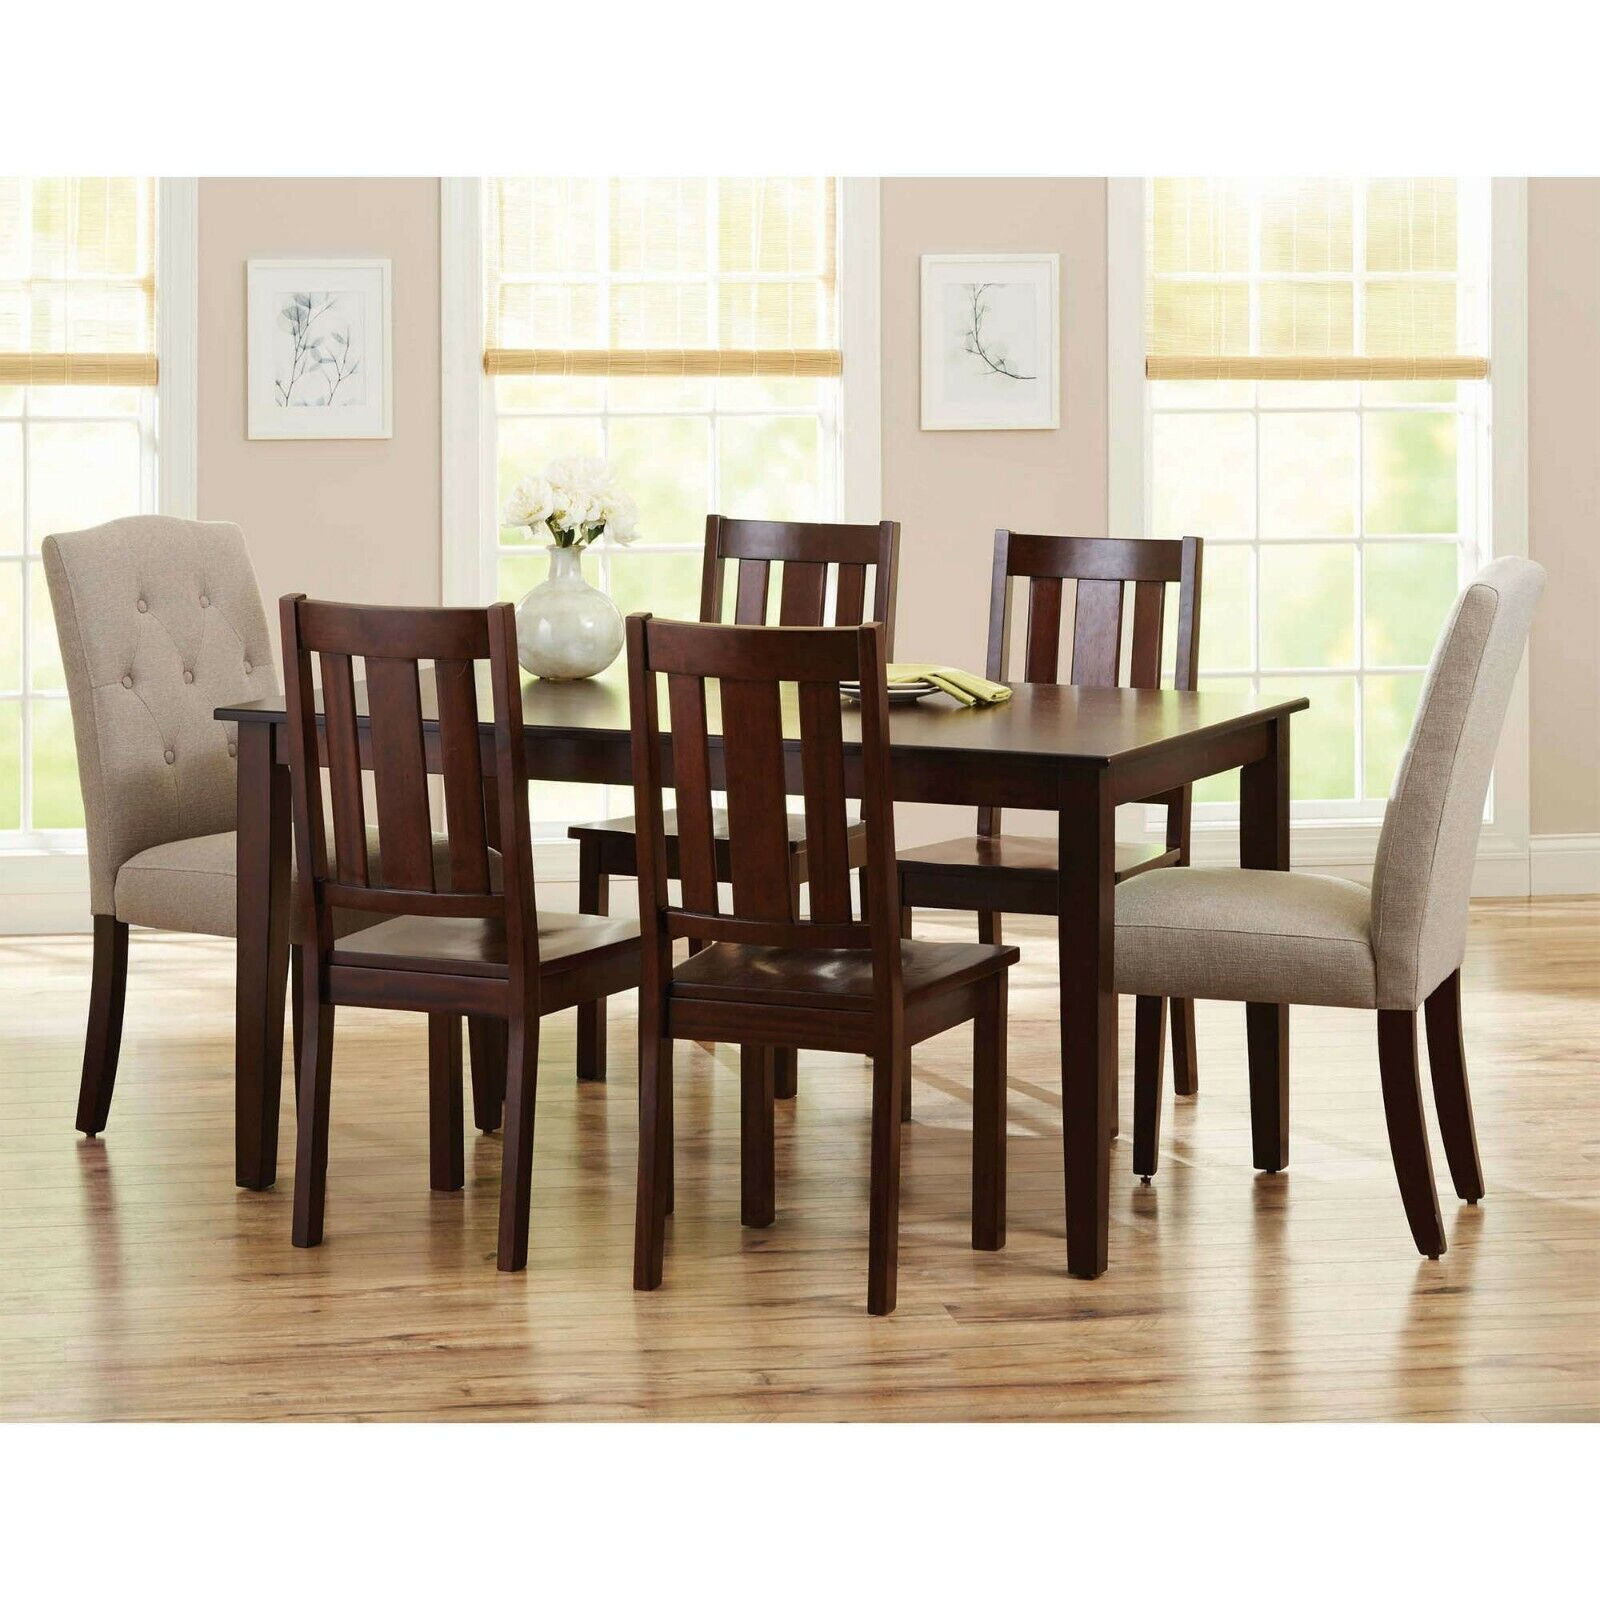 Dining Room Set Kitchen Tables And